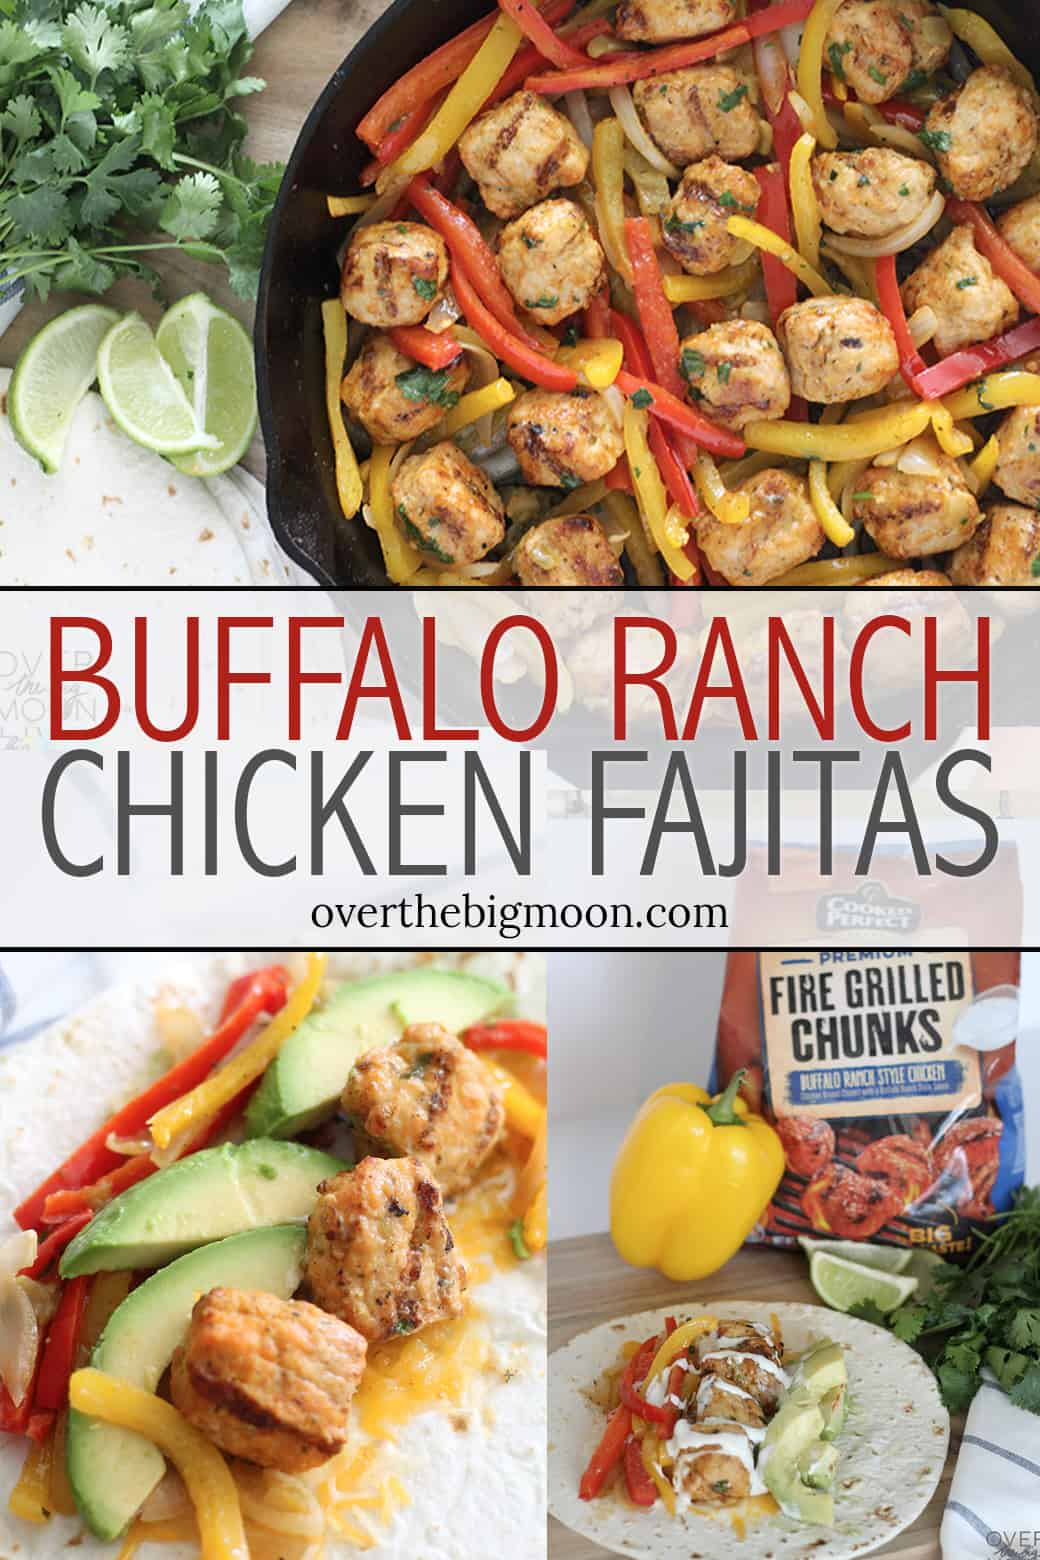 Buffalo Ranch Chicken Fajitas - this meal is a family favorite and takes less then 30 minutes to prepare! From overthebigmoon.com